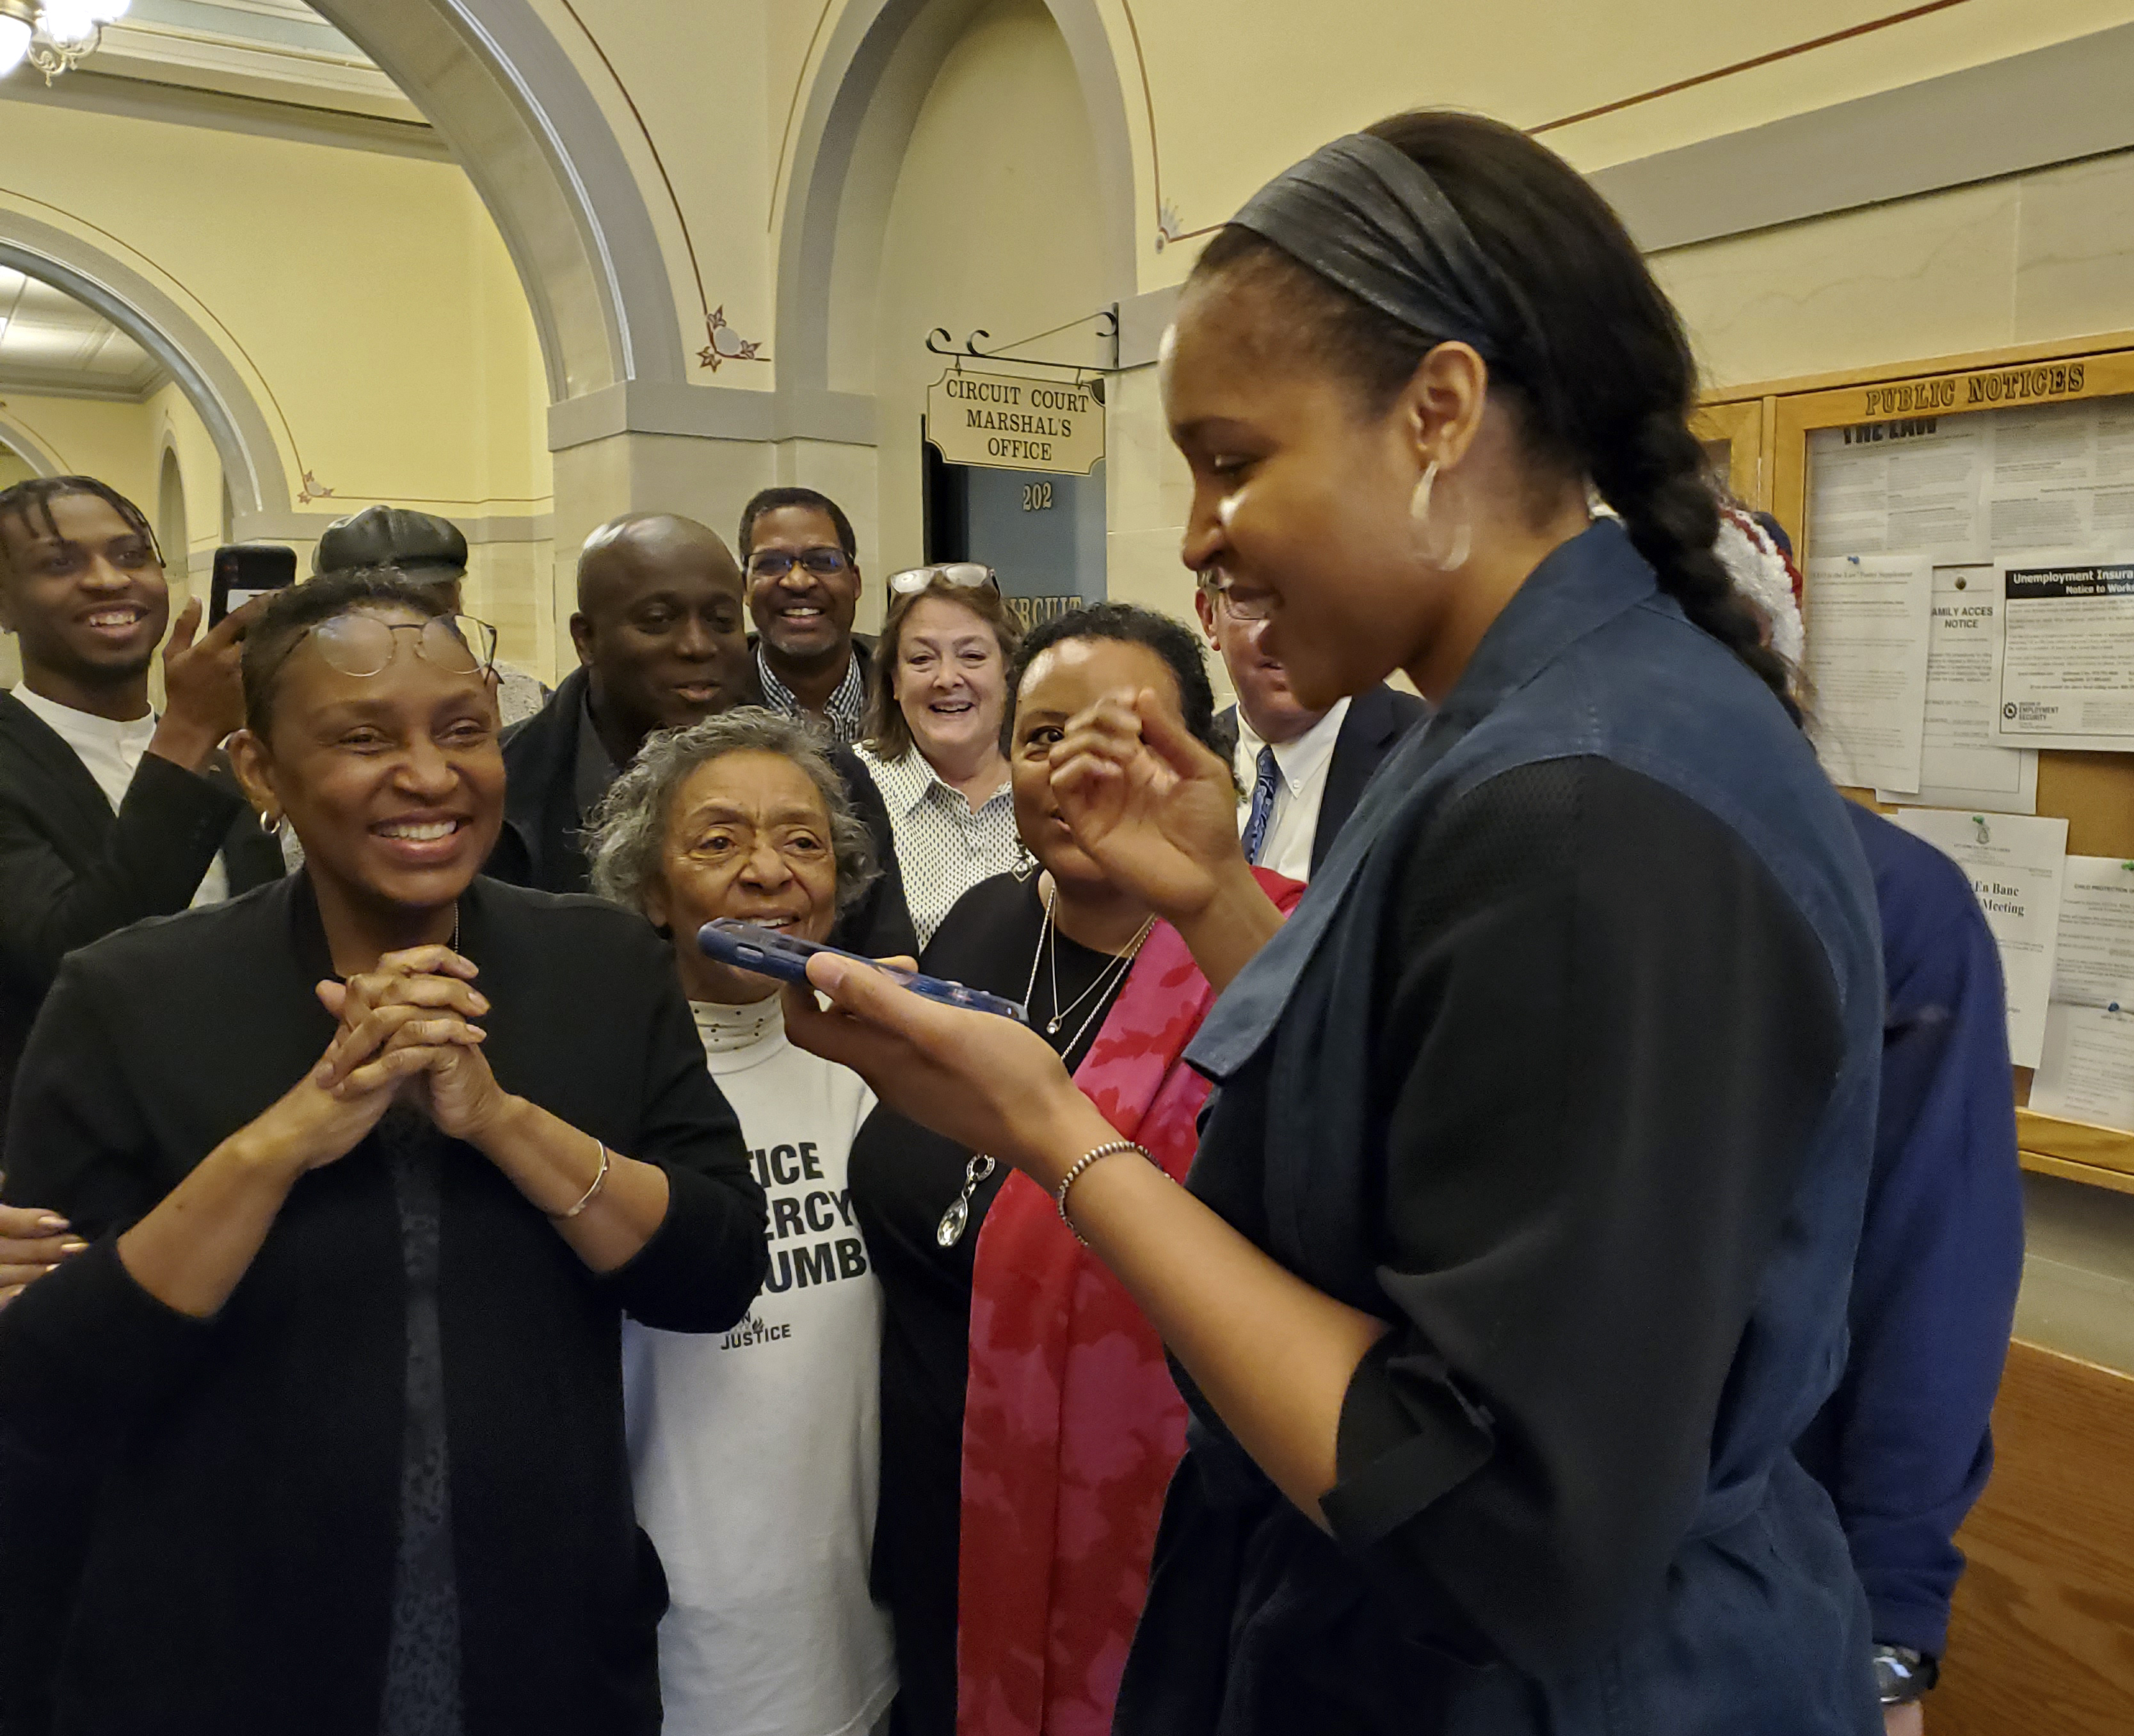 Jefferson City, Mo., native and WNBA star Maya Moore, right, calls Jonathan Irons as supporters react Monday, March 9, 2020, in Jefferson City after Cole County Judge Dan Green overturned Irons' convictions in a 1997 burglary and assault case. Moore, a family friend, had supported Irons, sharing his story on a national basis.